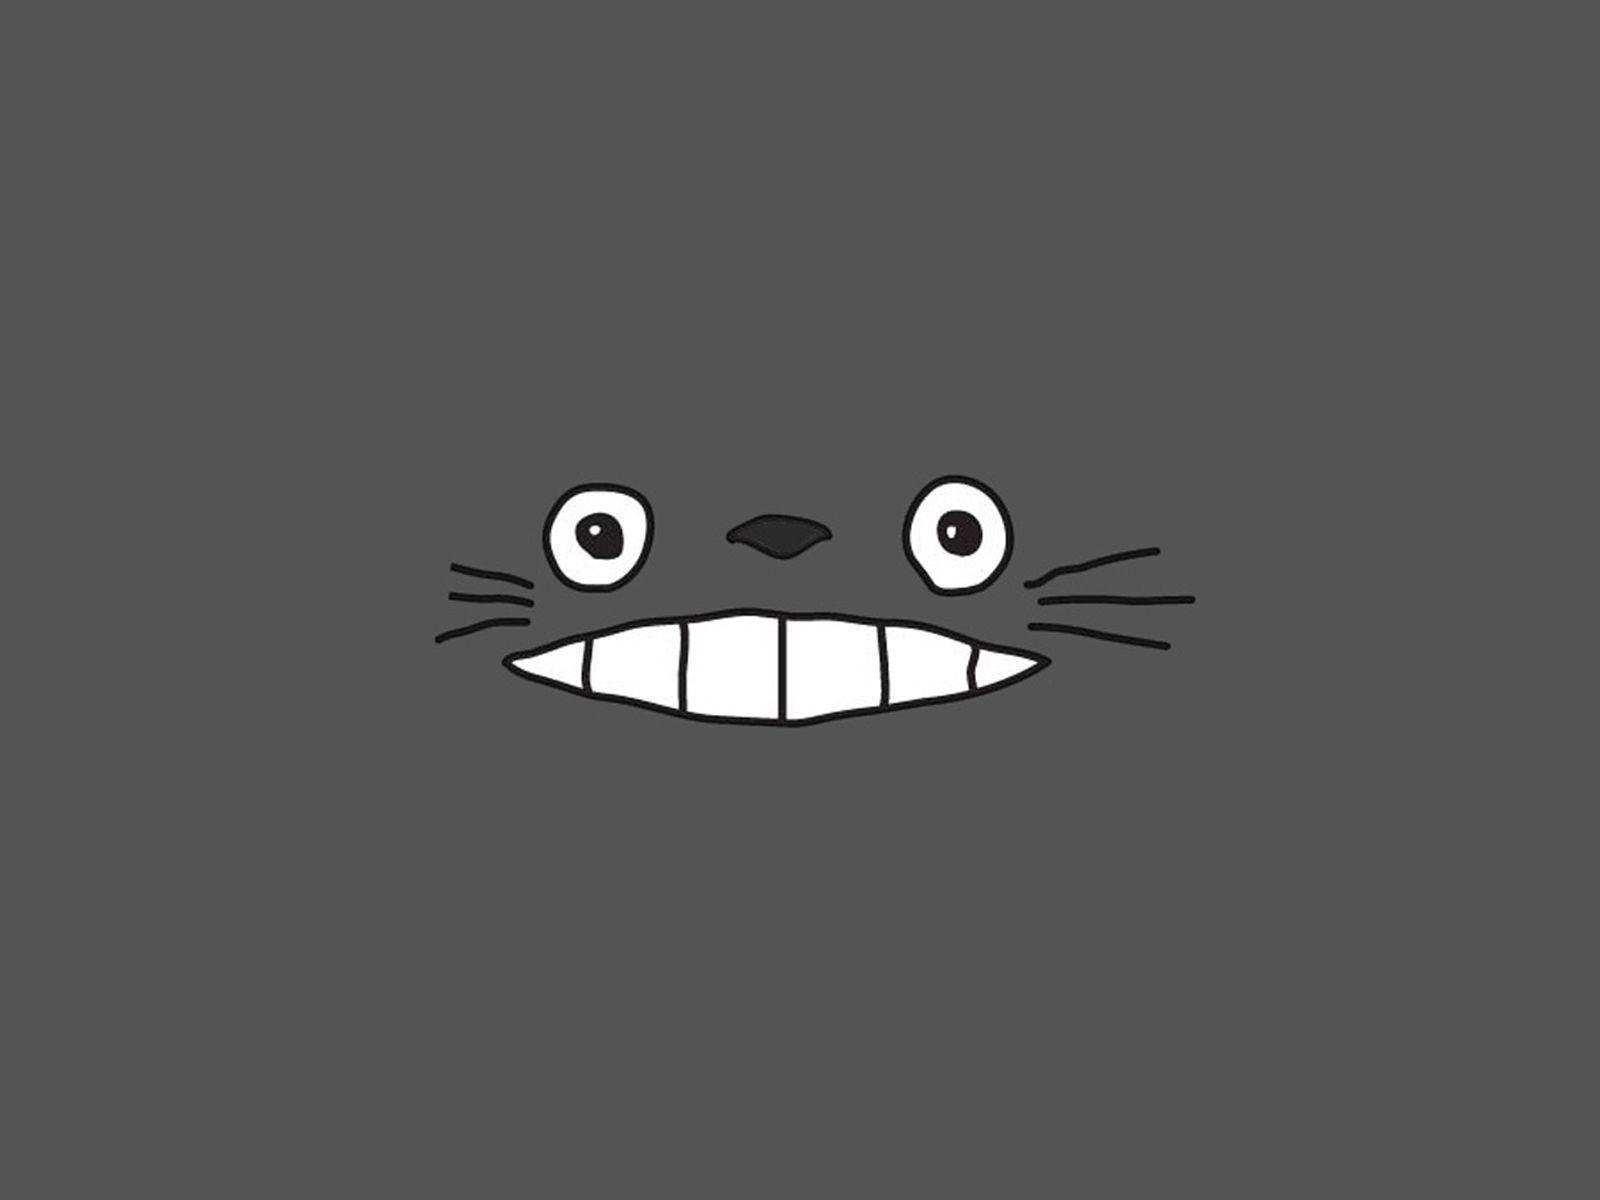 Download Neighbour Totoro Wallpaper 1600x1200